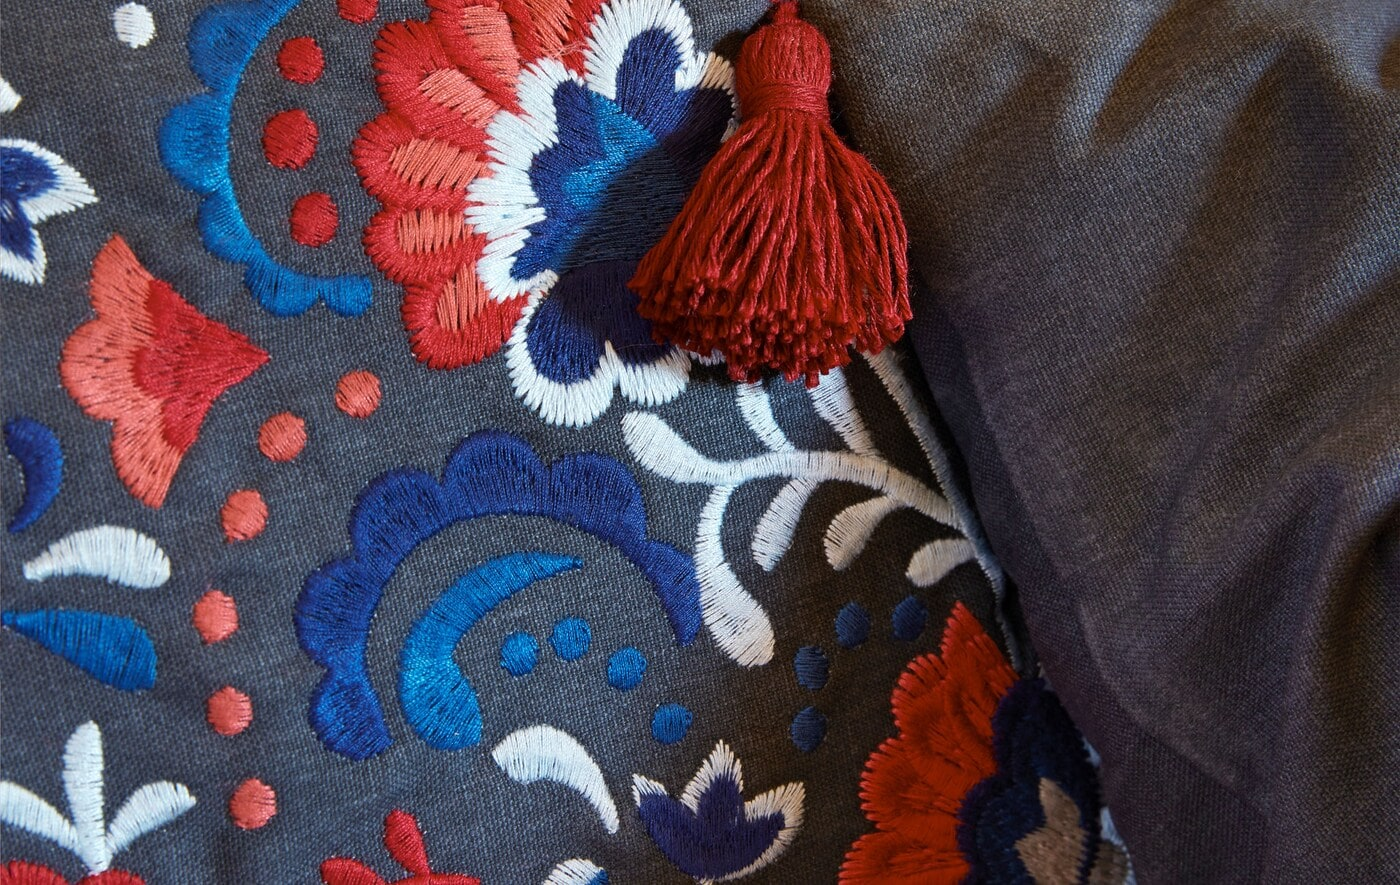 Link to IDEA 'Folksy and fabulous' - close up image of a cushion cover embroidered in red and blue motifs.